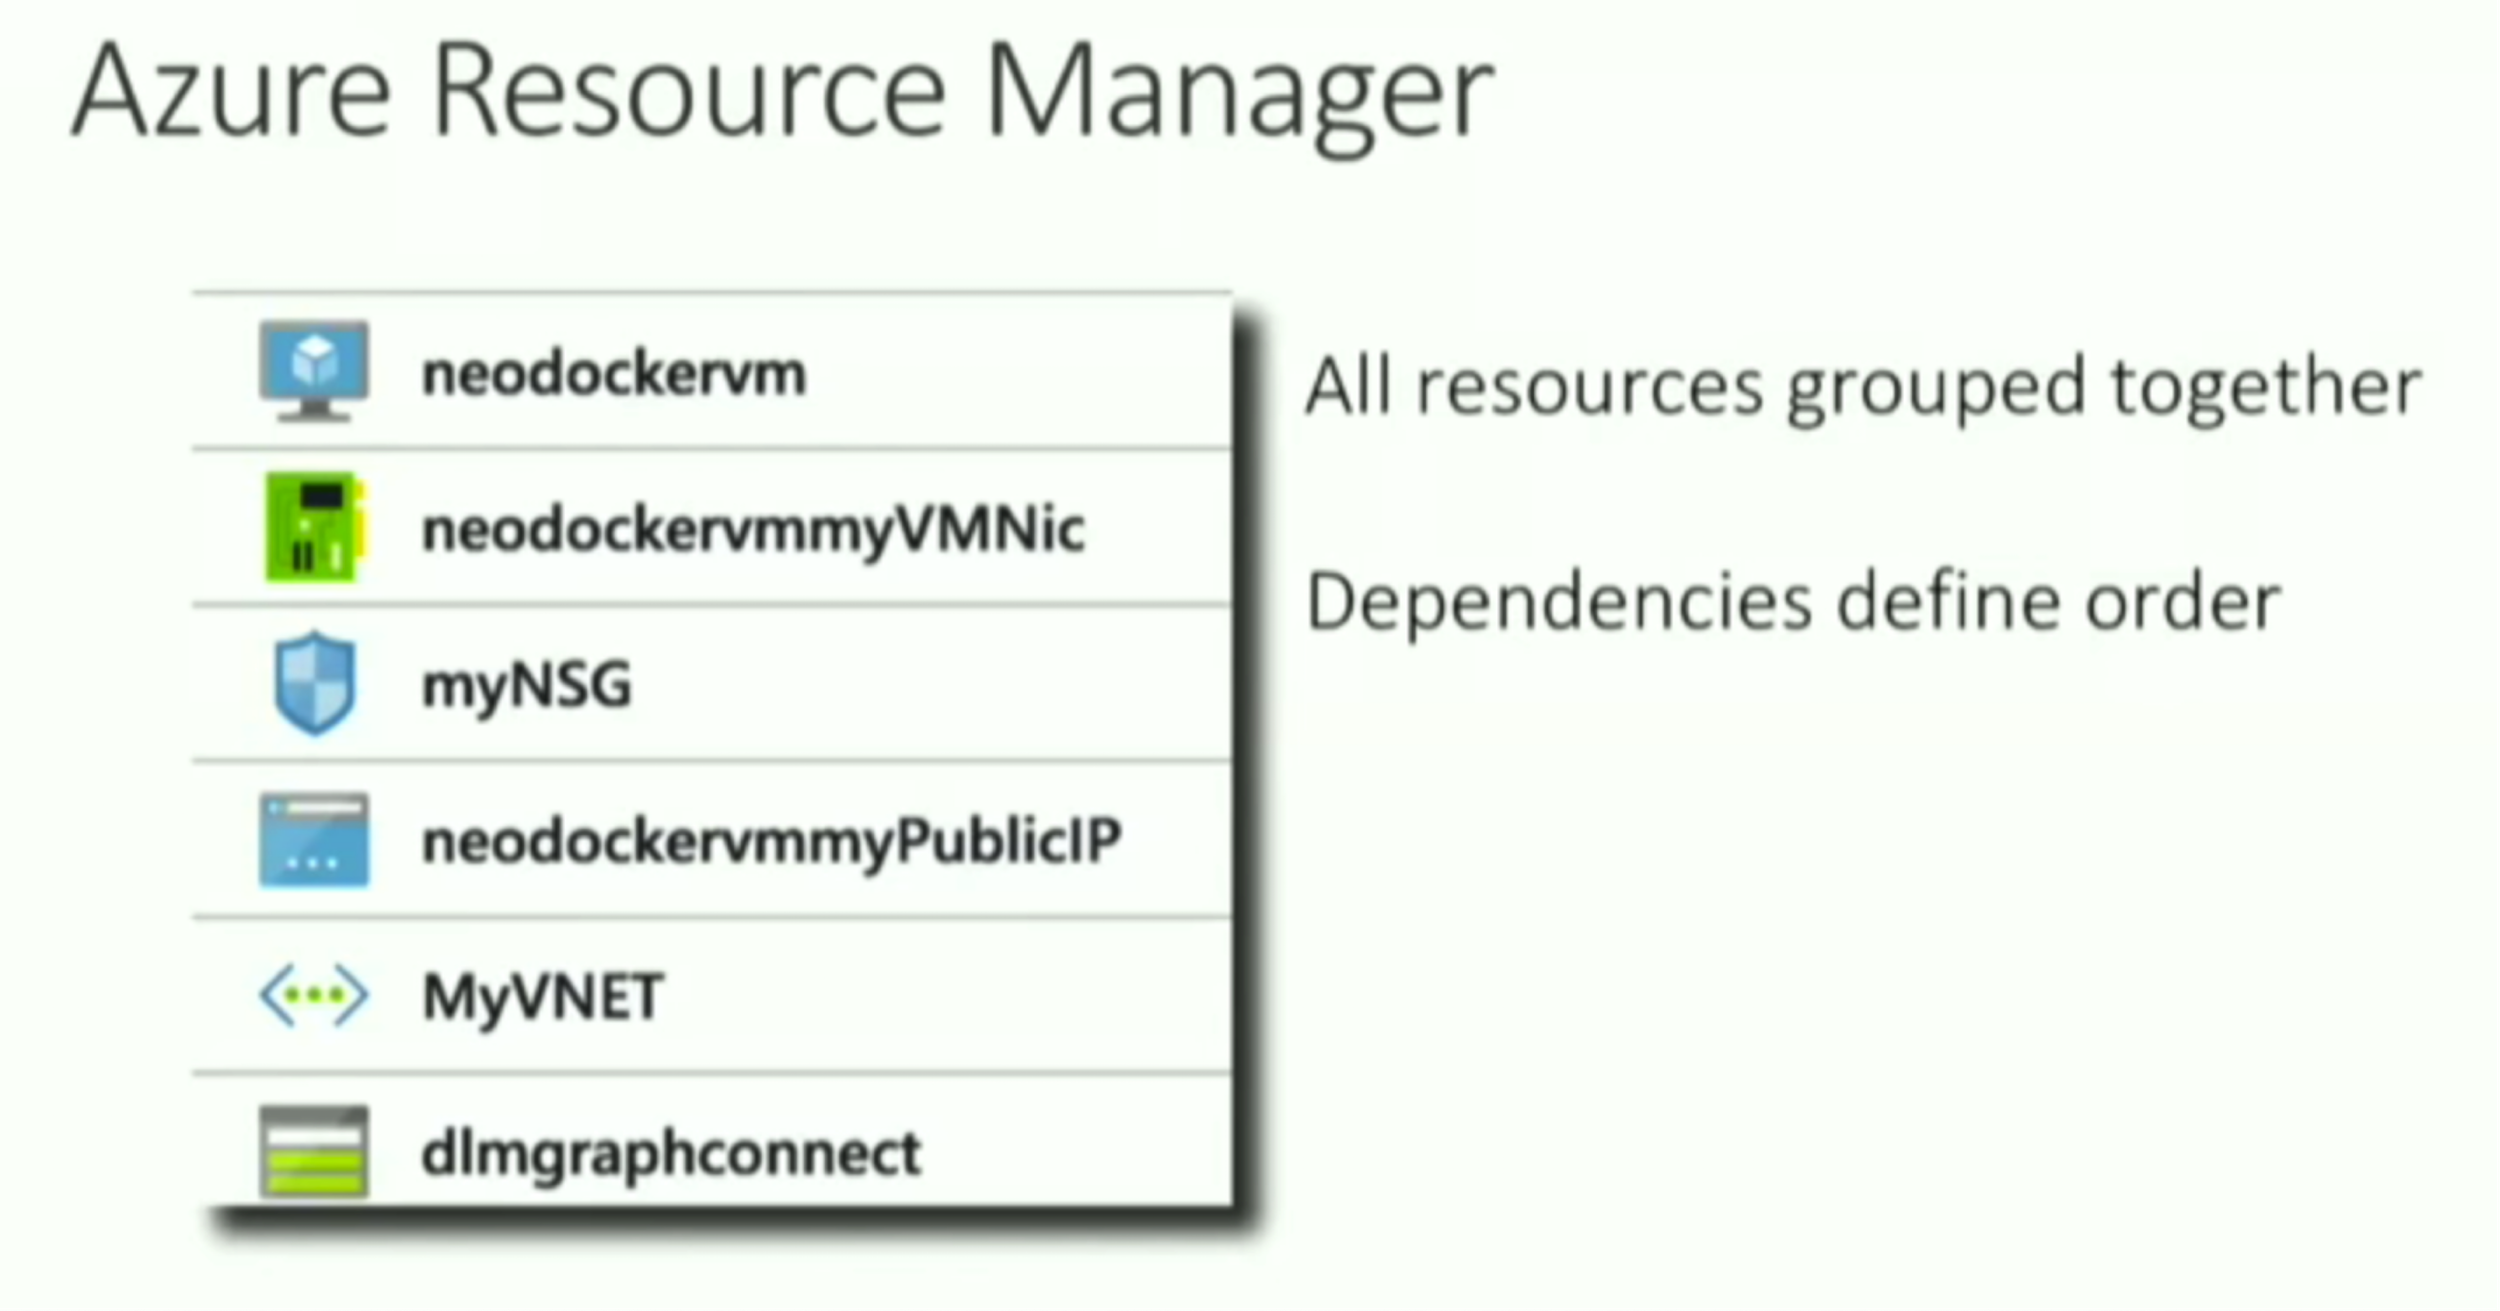 The Microsoft Azure Resource Manager